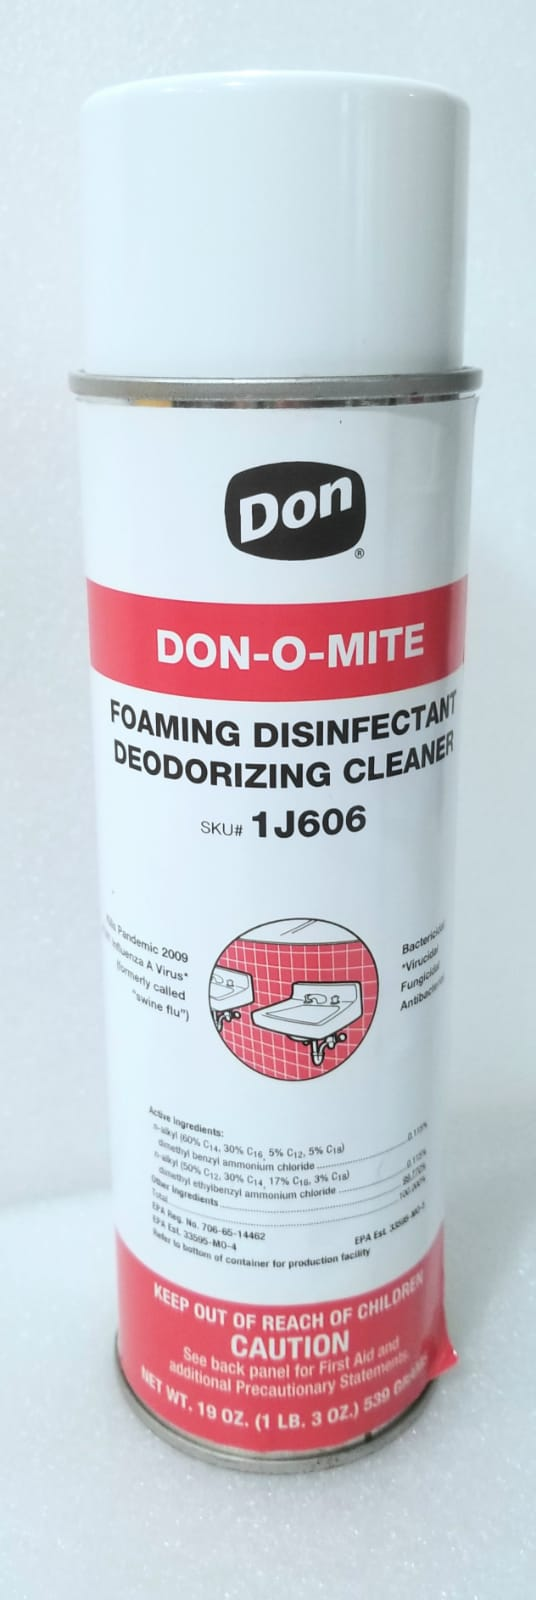 Foaming Disinfectant Spray